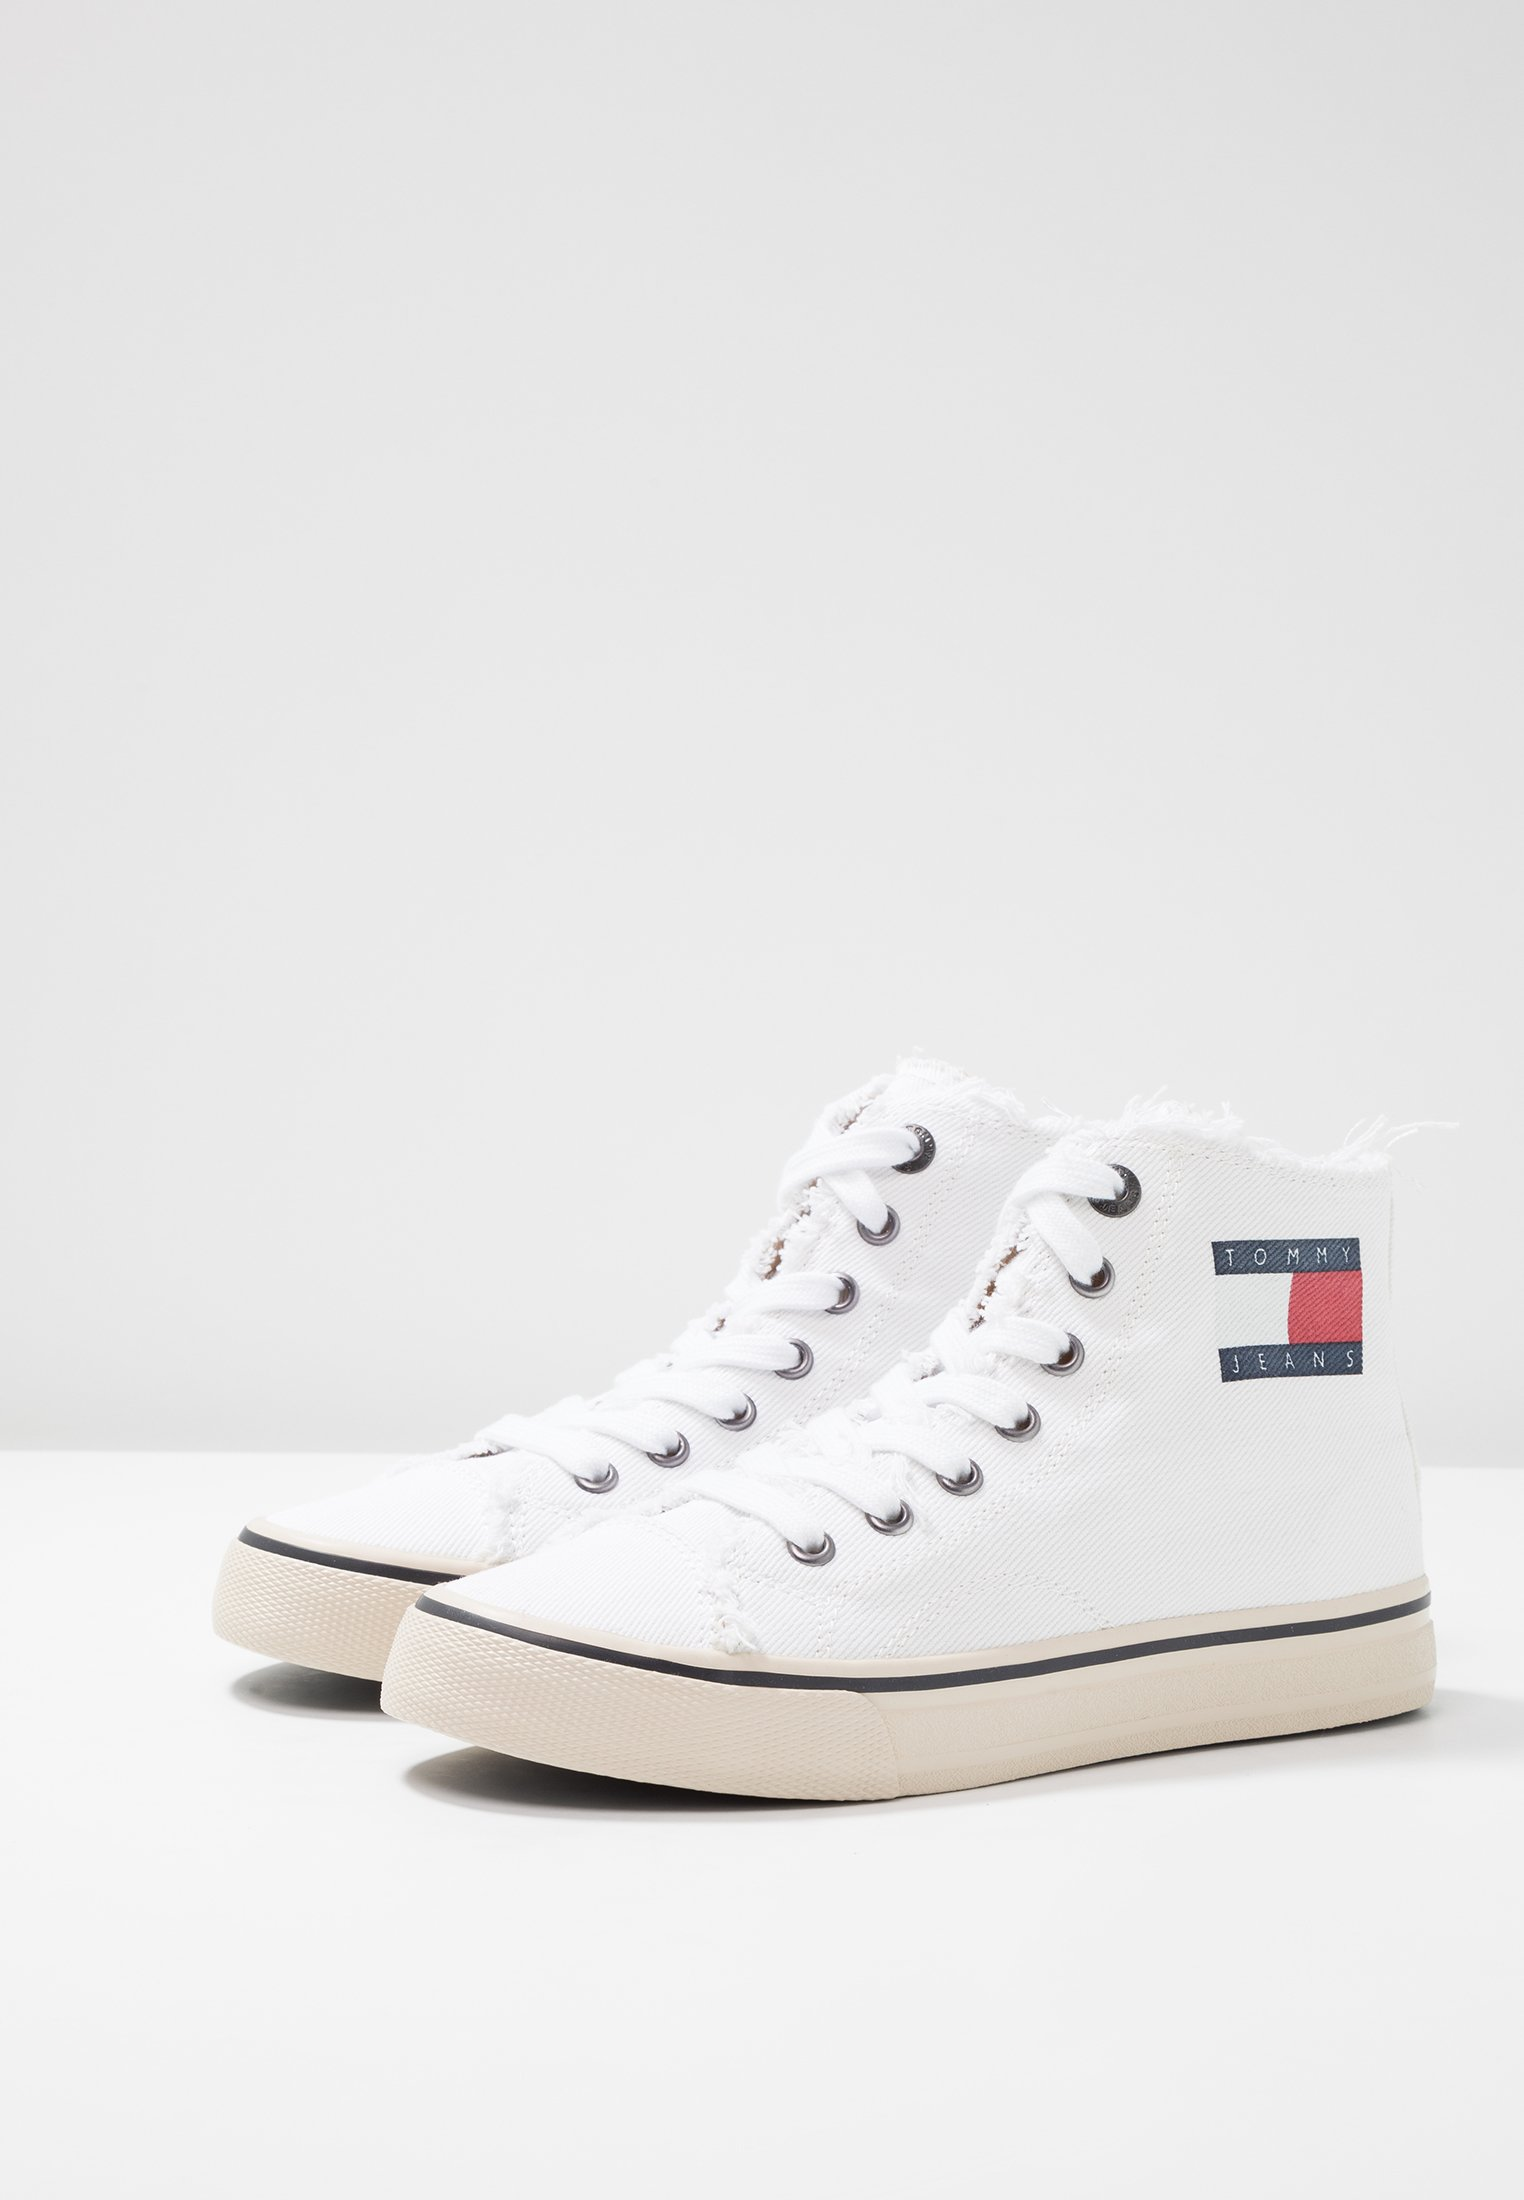 MontantesWhite Jeans Jeans MontantesWhite Tommy Baskets Baskets Tommy Tommy tshrQd